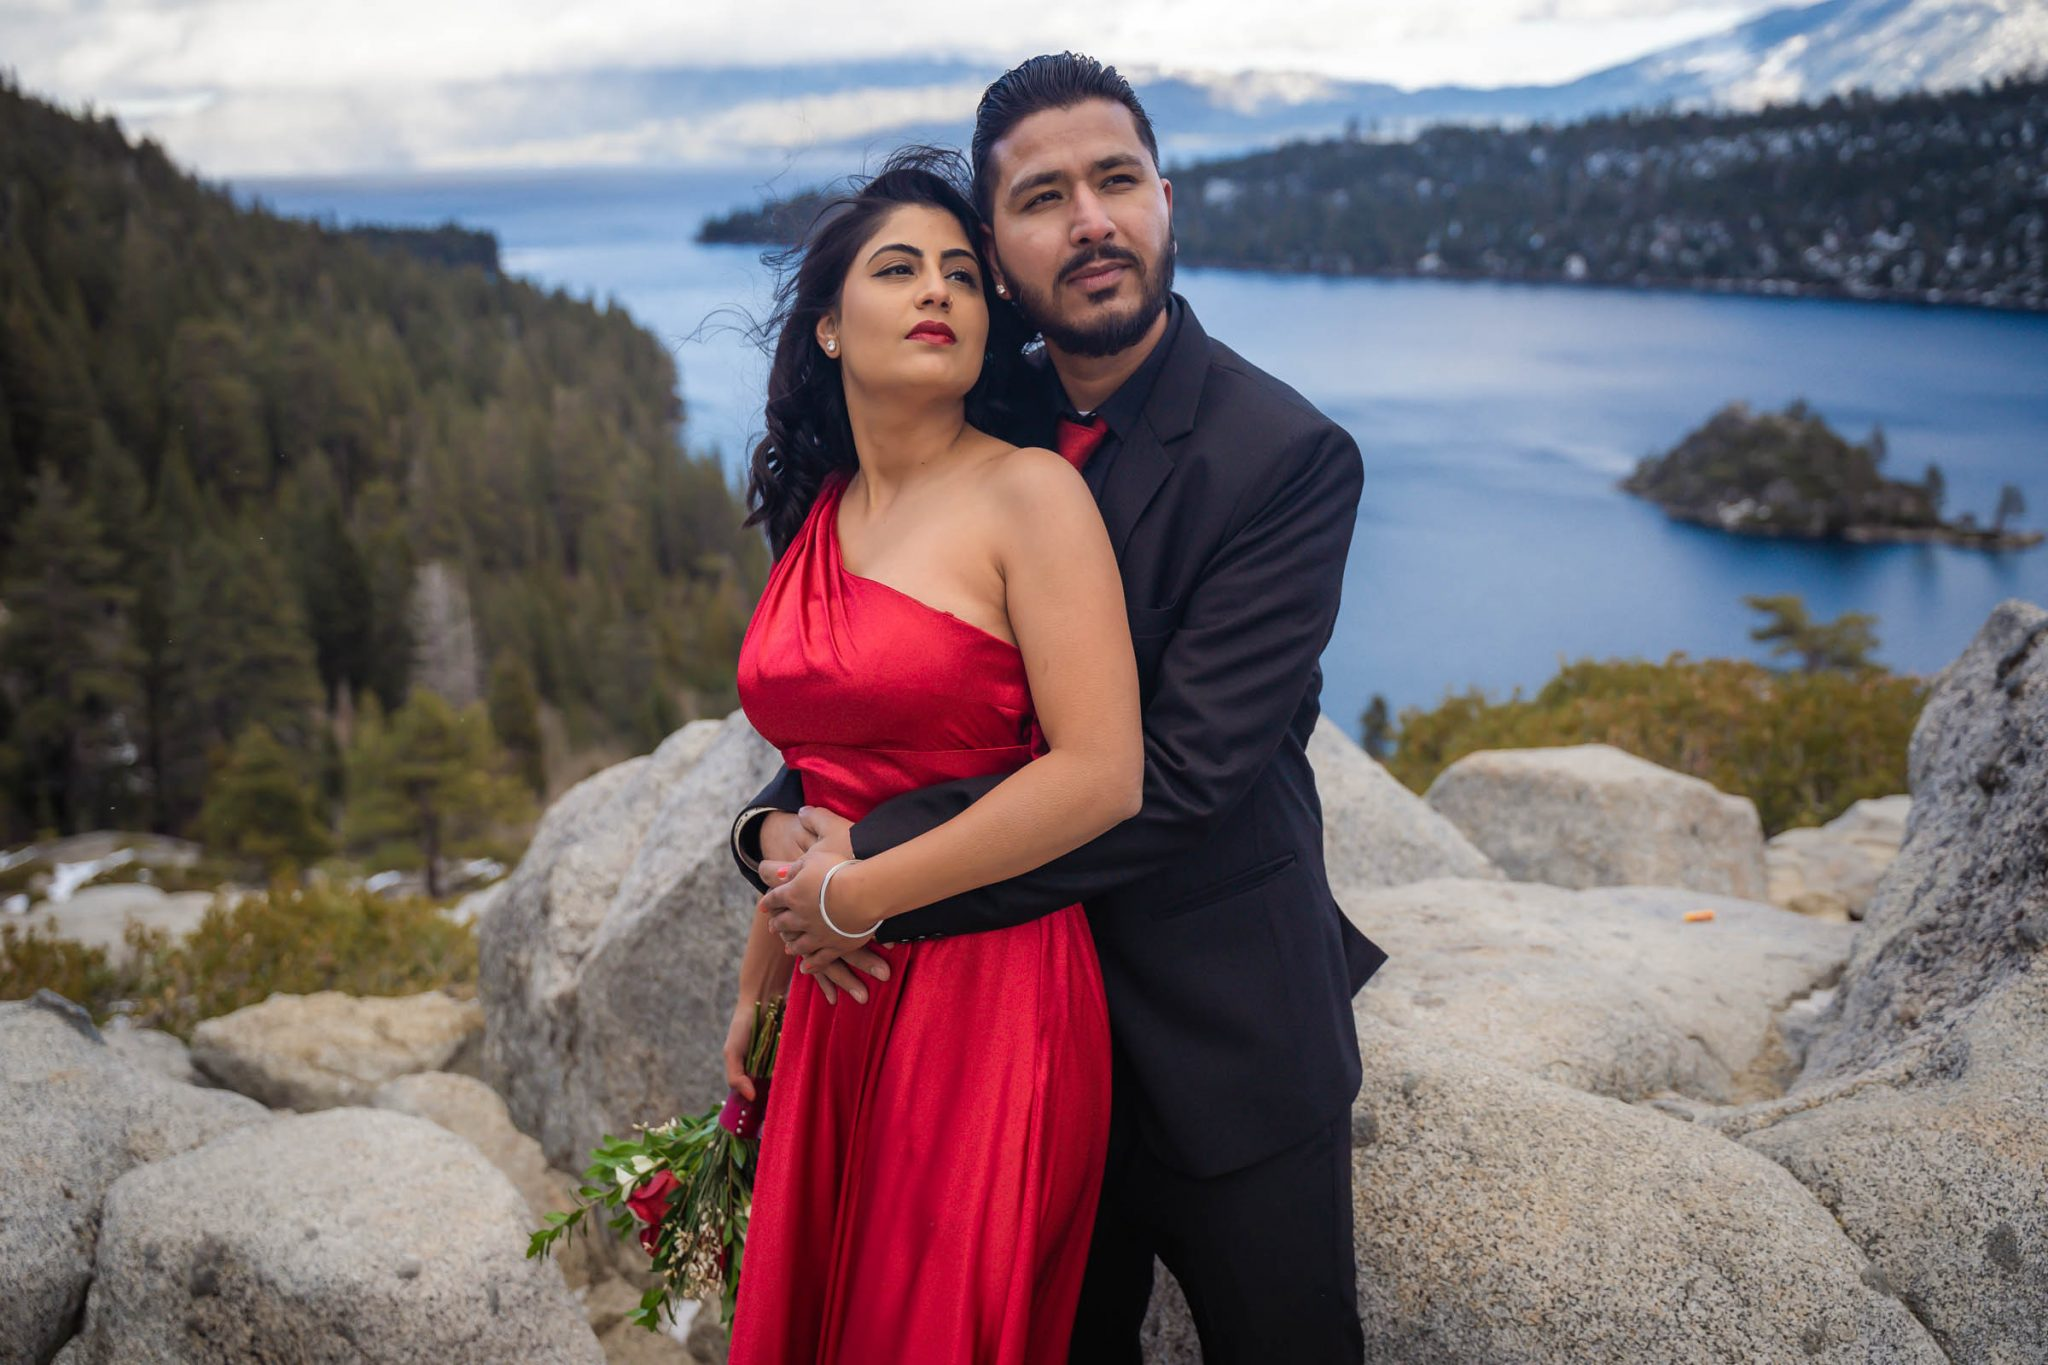 Engagement photos overlooking Emerald Bay and Fanette Island in South Lake Tahoe